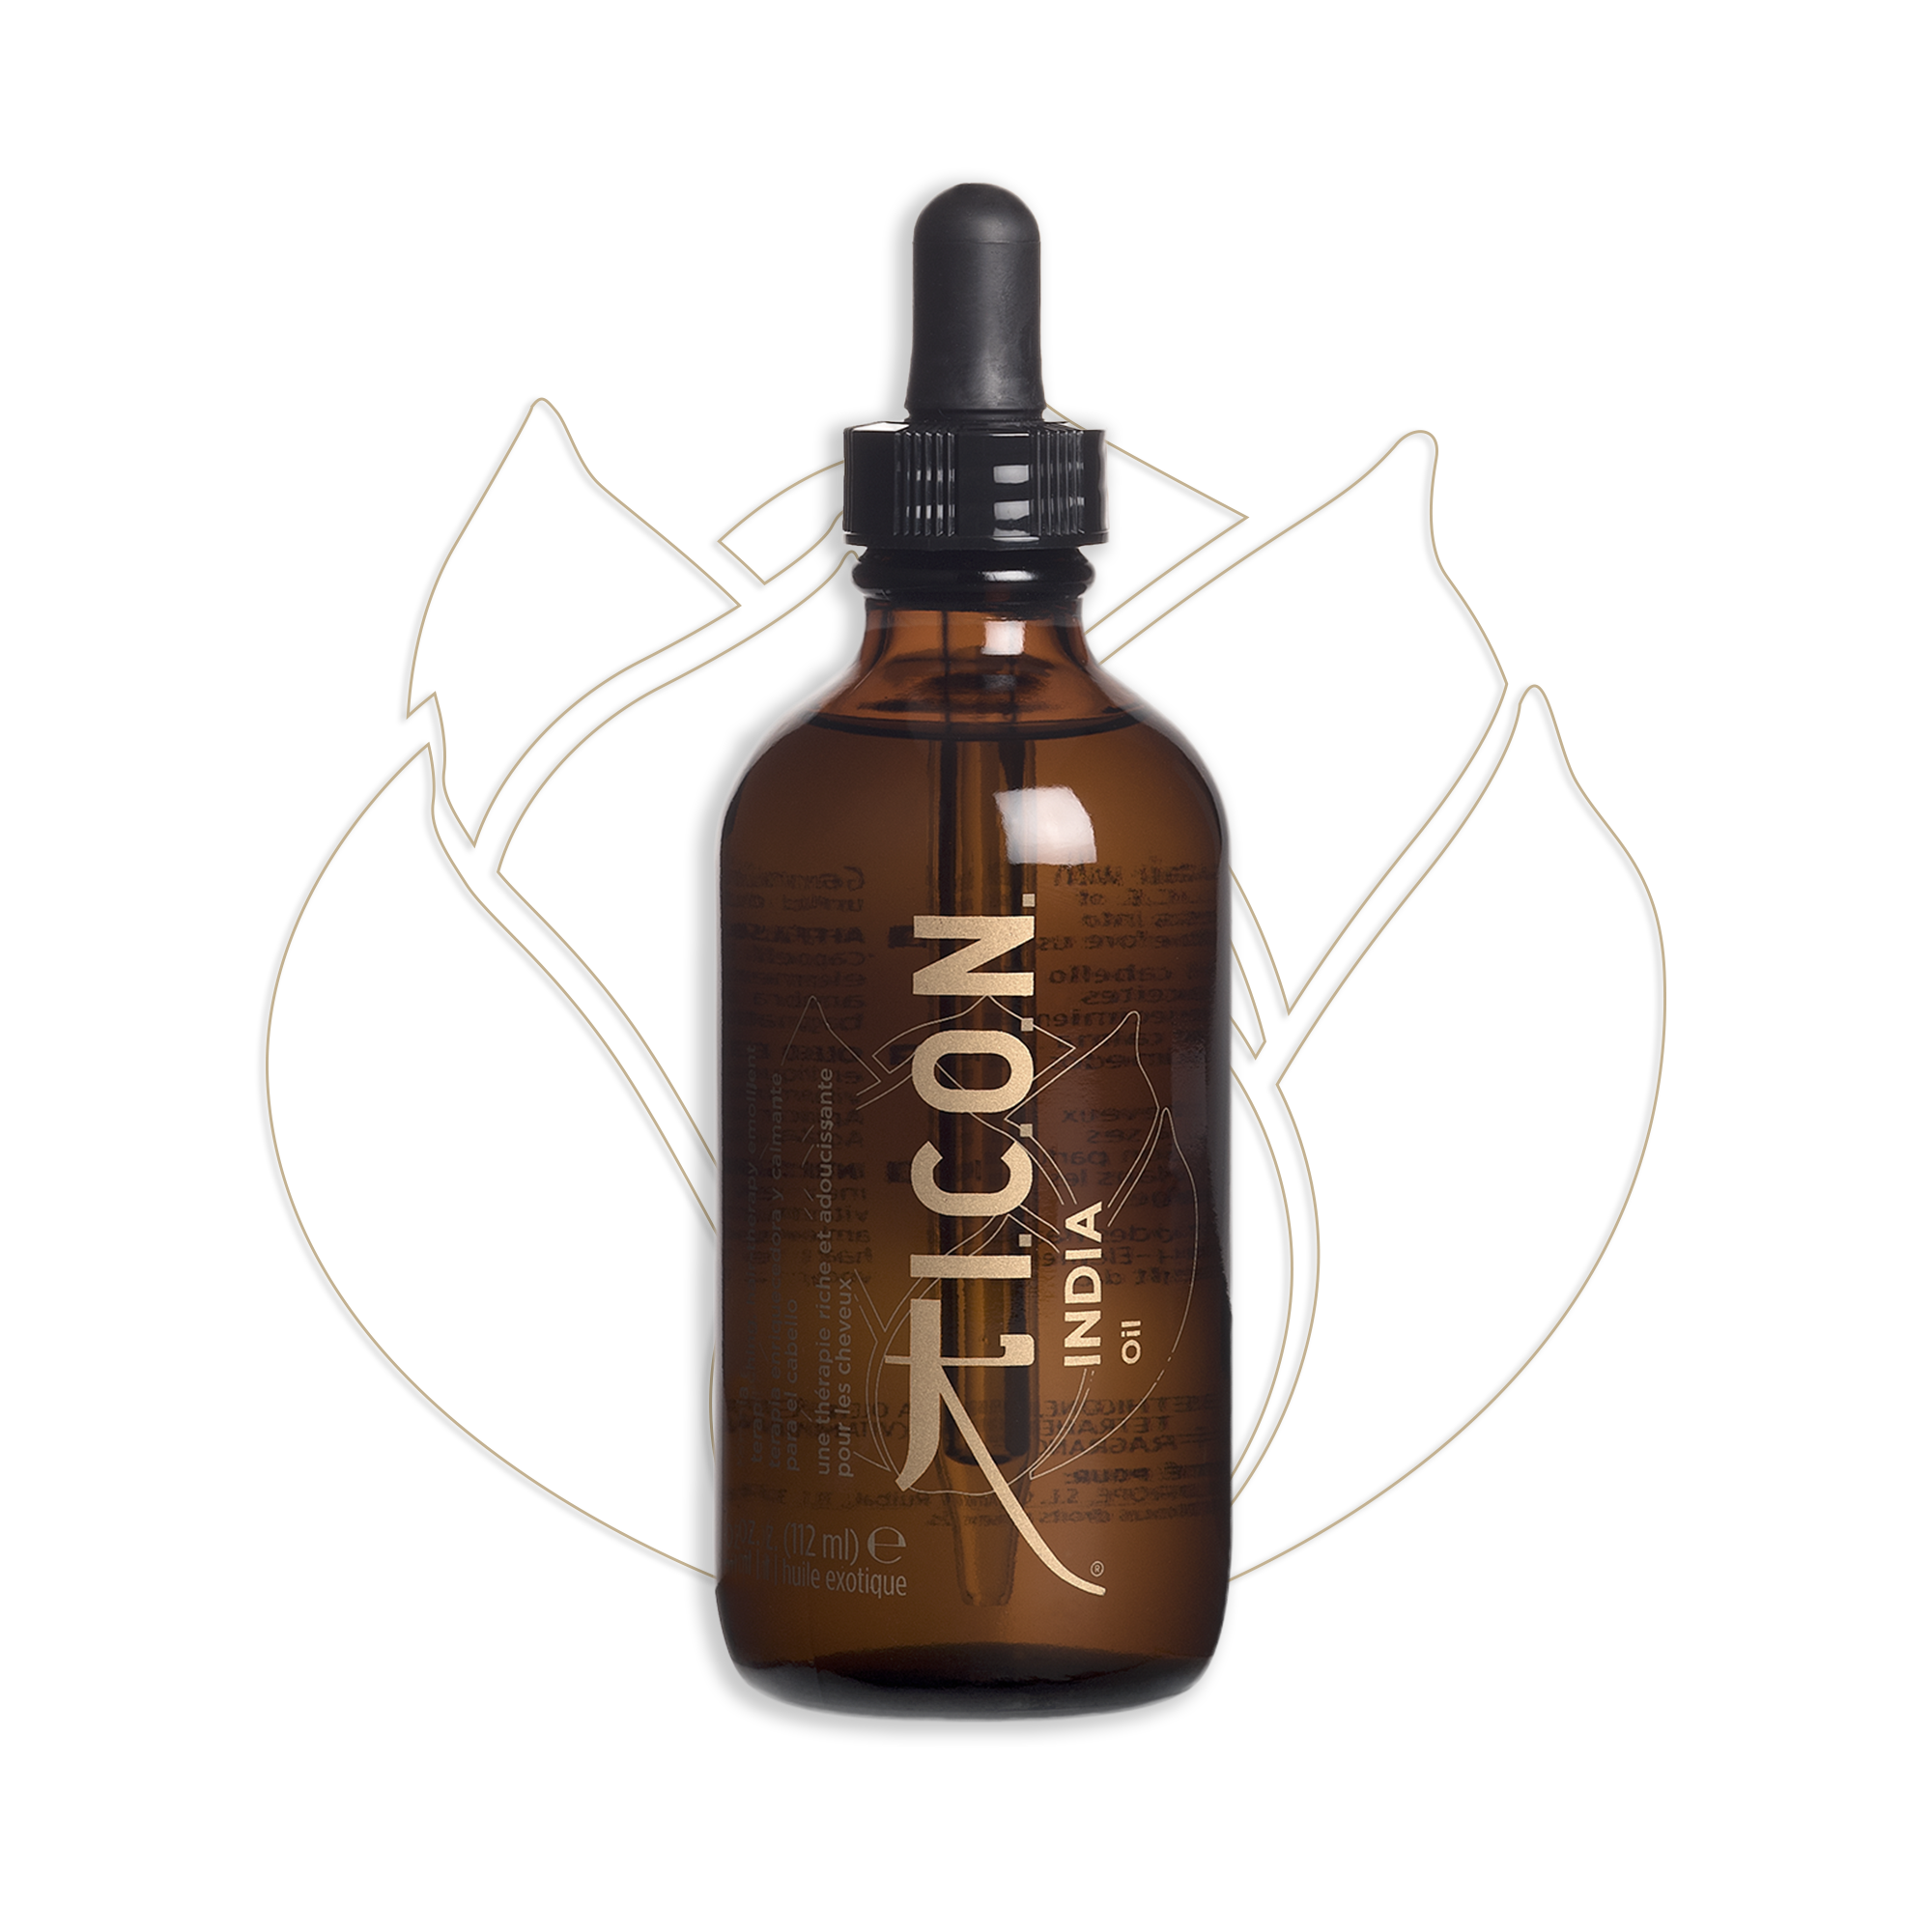 India Oil | I.C.O.N. India | I.C.O.N. Products